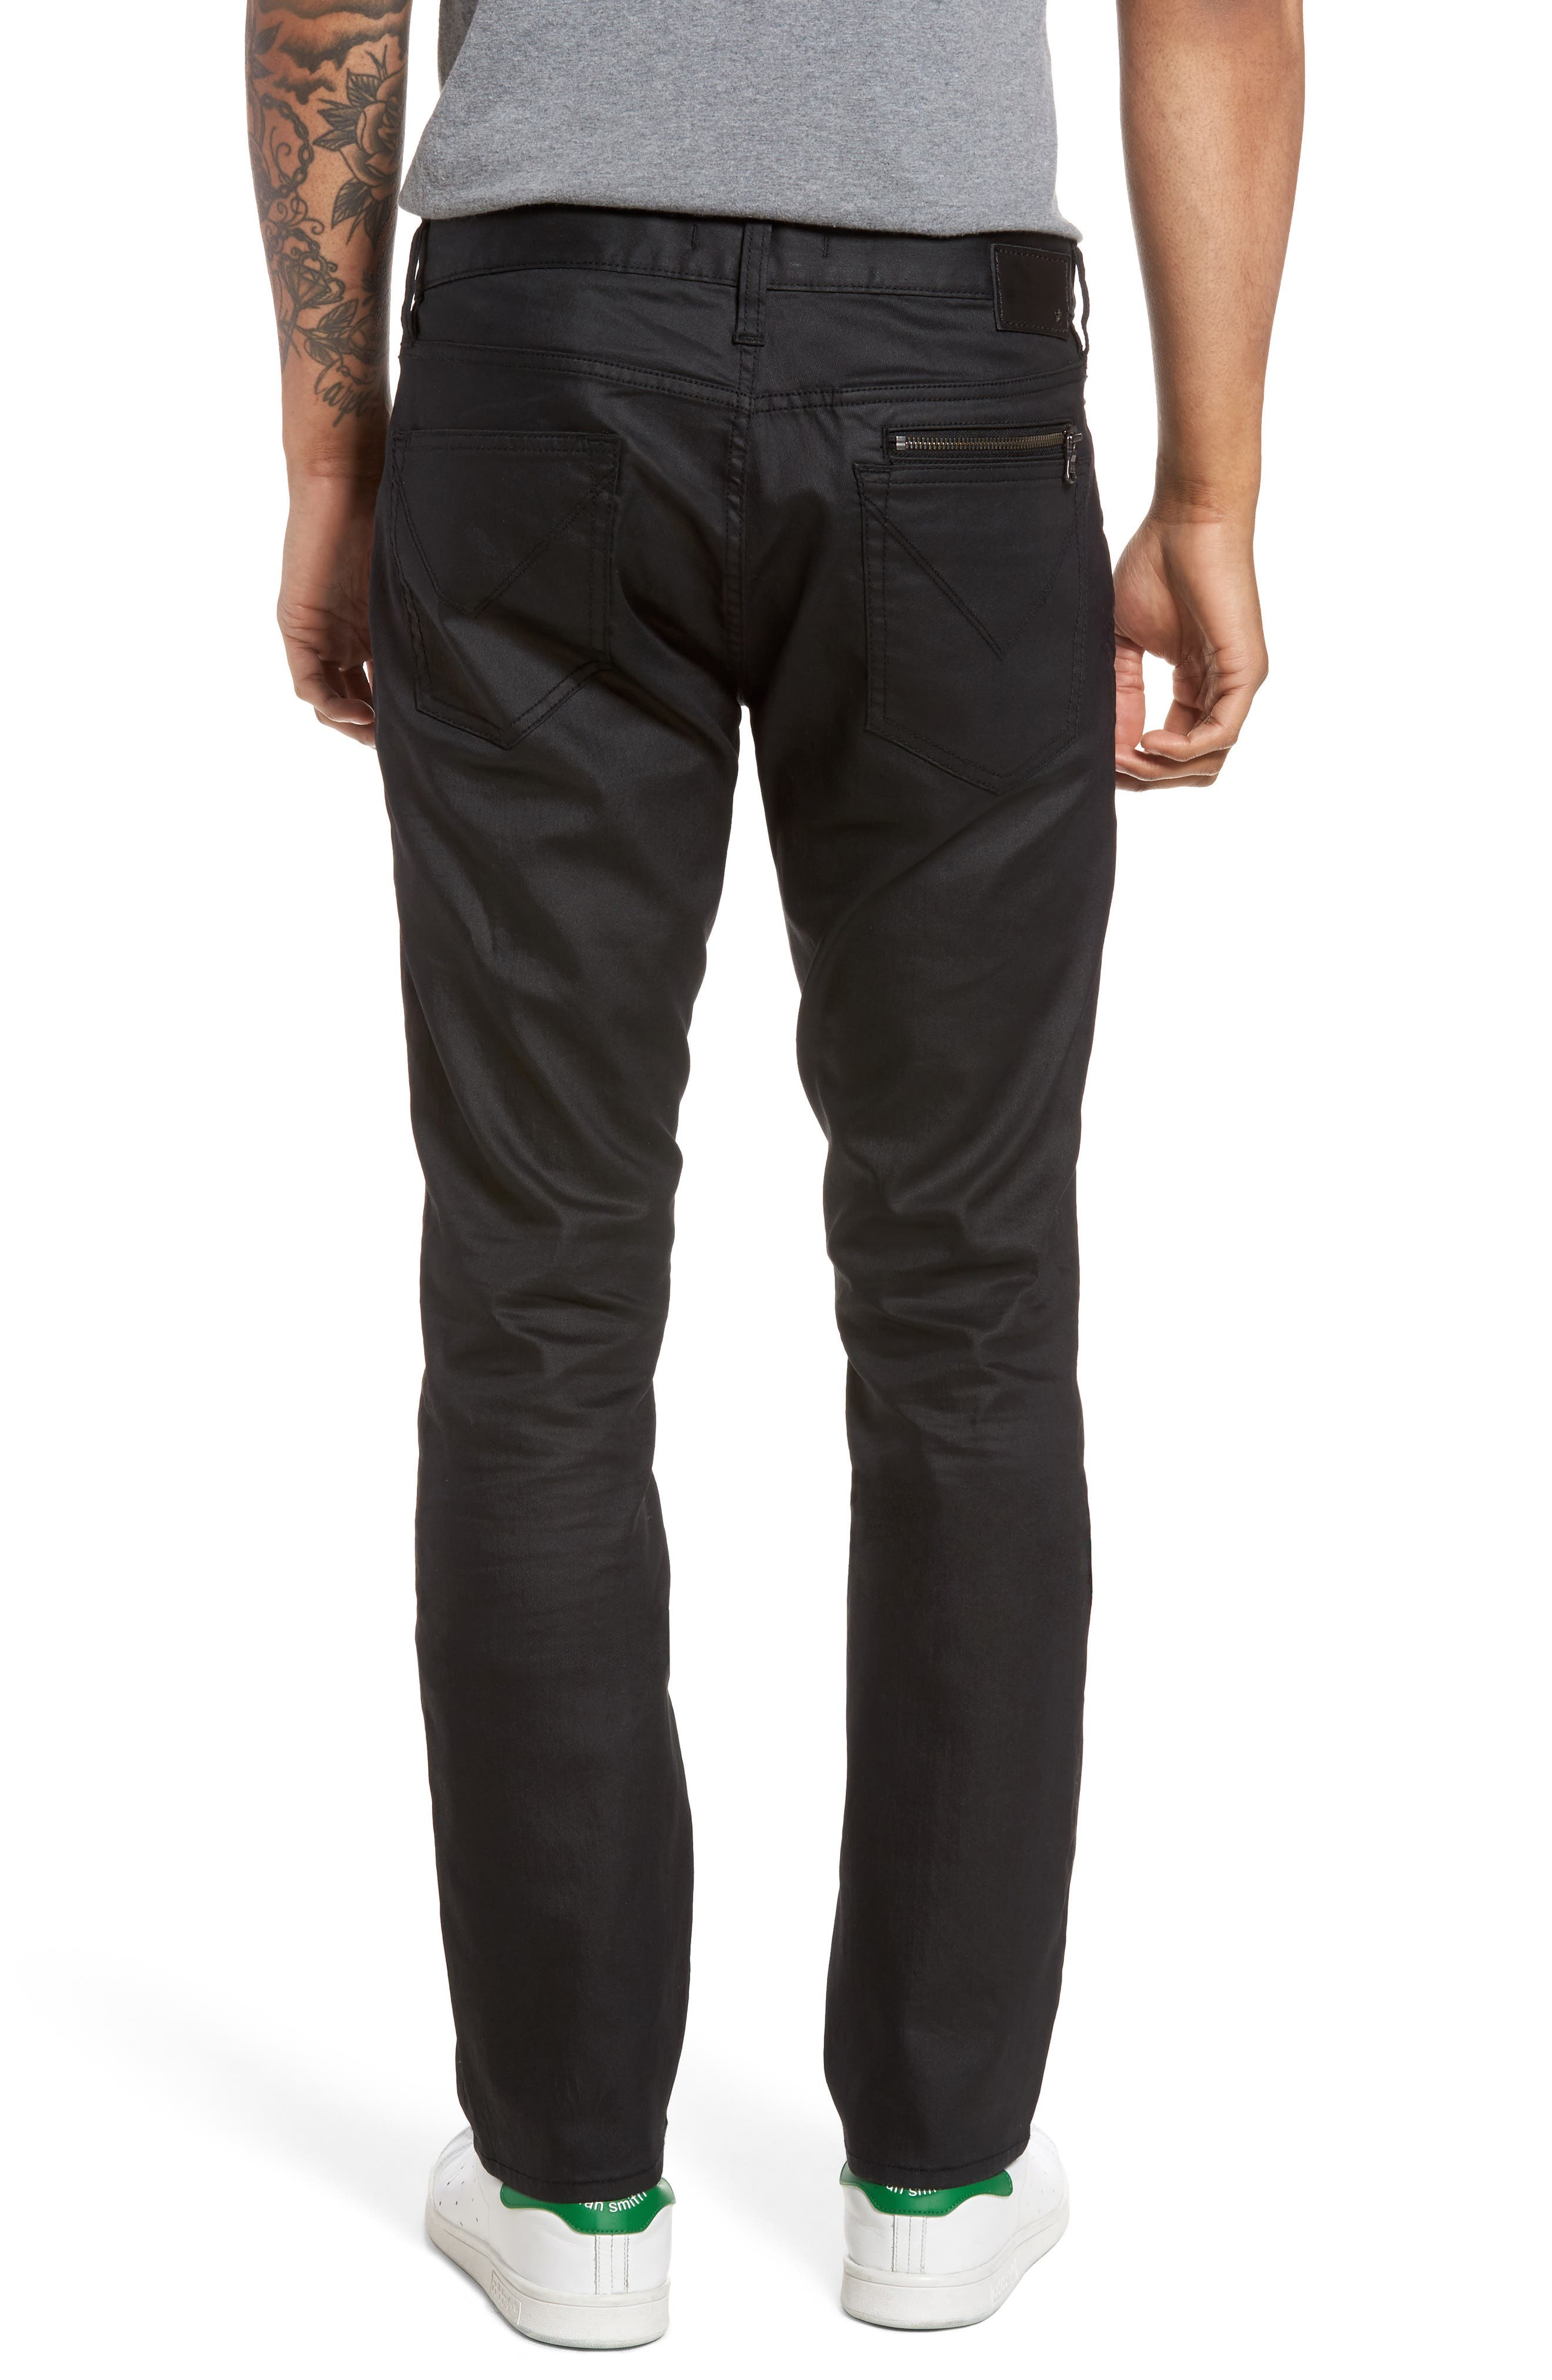 Wight Skinny Jeans,                             Alternate thumbnail 6, color,